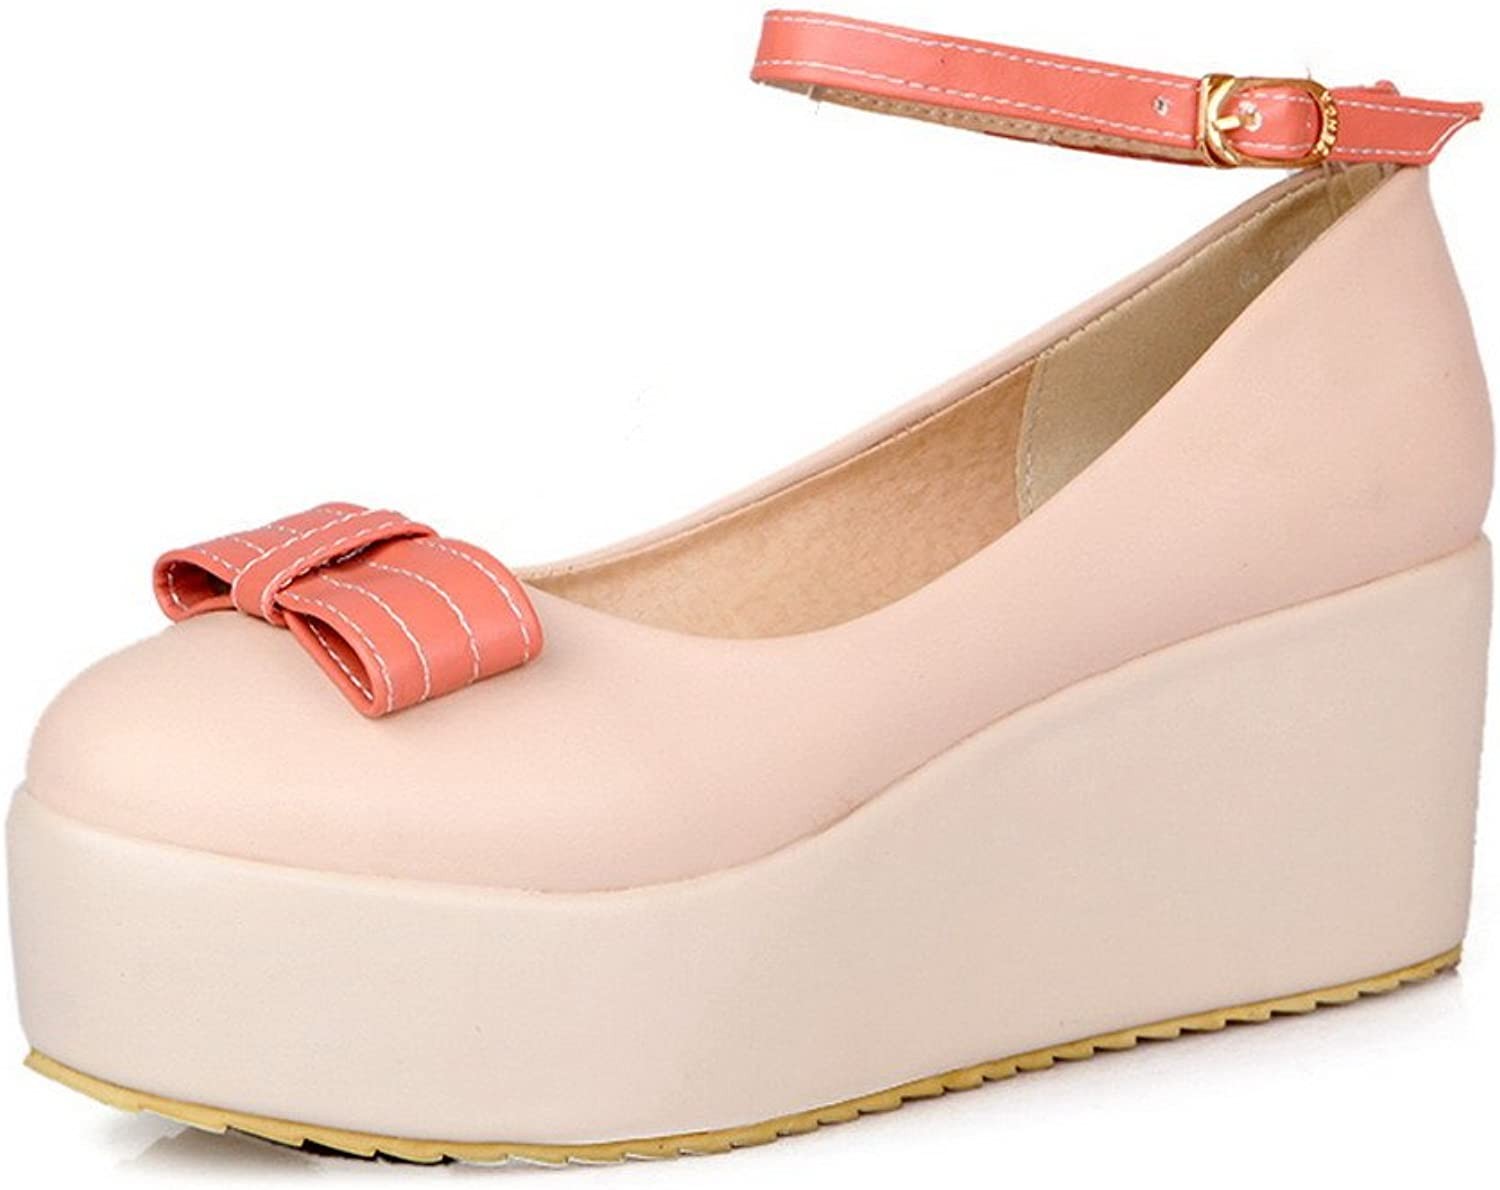 WeenFashion Women's Closed Round Toe Mid Heel Wedge Platform PU Solid Mary Jane Pumps whith Bowknot , Apricot, 9.5 B(M) US